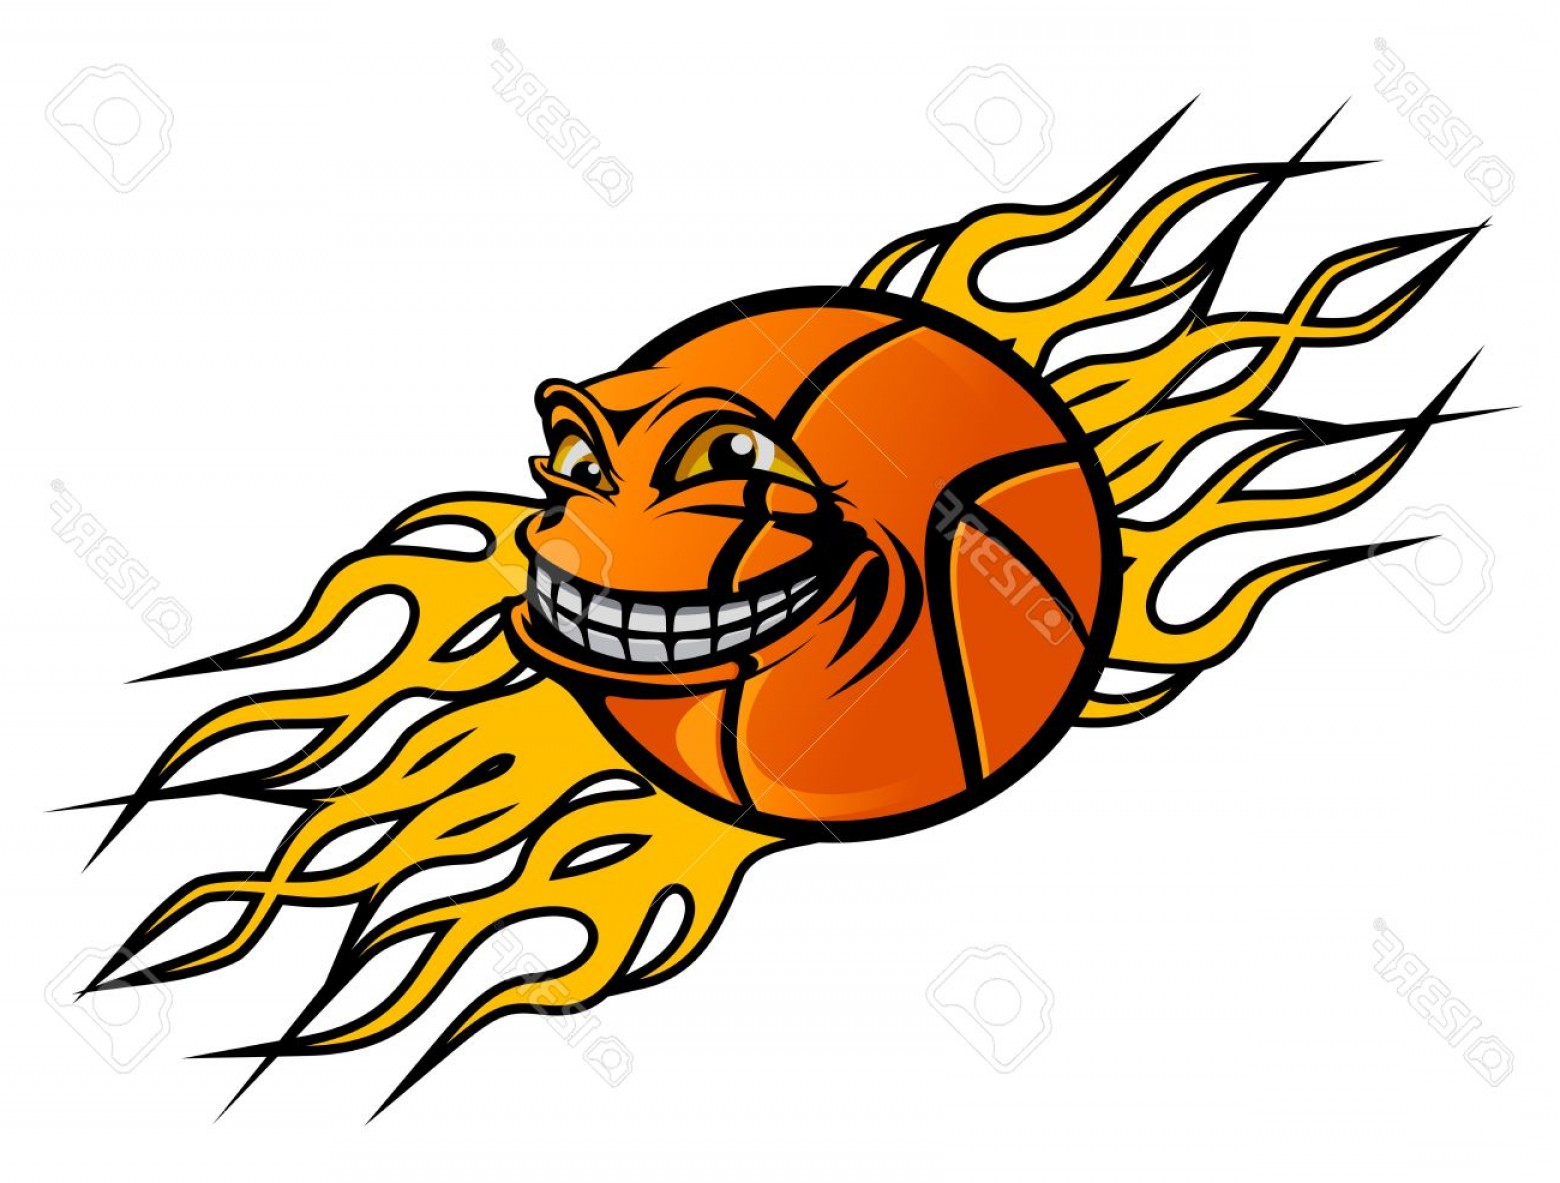 Basketball Seams Vector Clip Art: Photoflying Funny Basketball Ball With Flames For Sports Tattoo Design